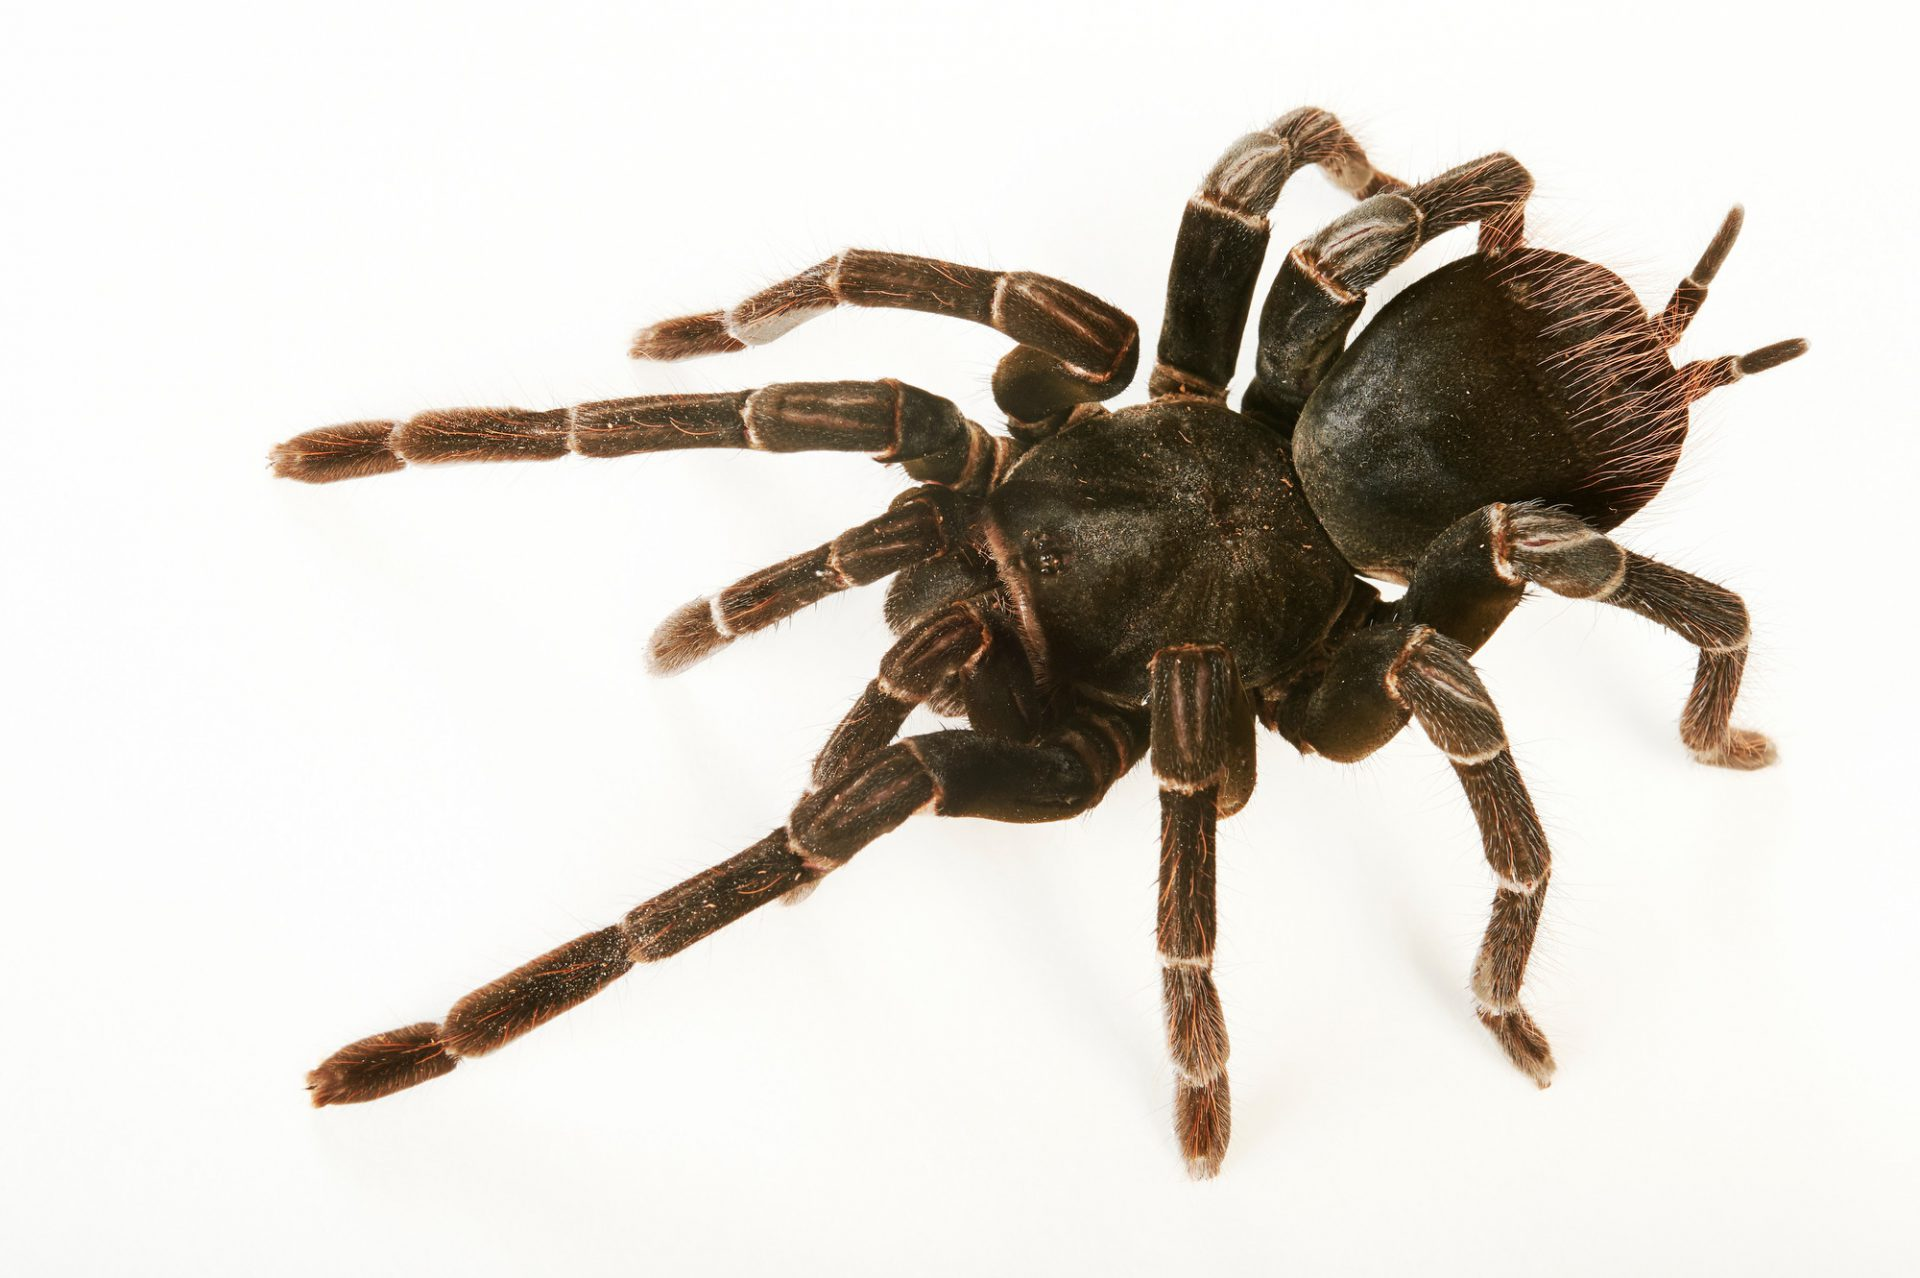 Picture of a Bolivian blue-legged tarantula (Pamphobeteus antinous) at the Wellington Zoo.